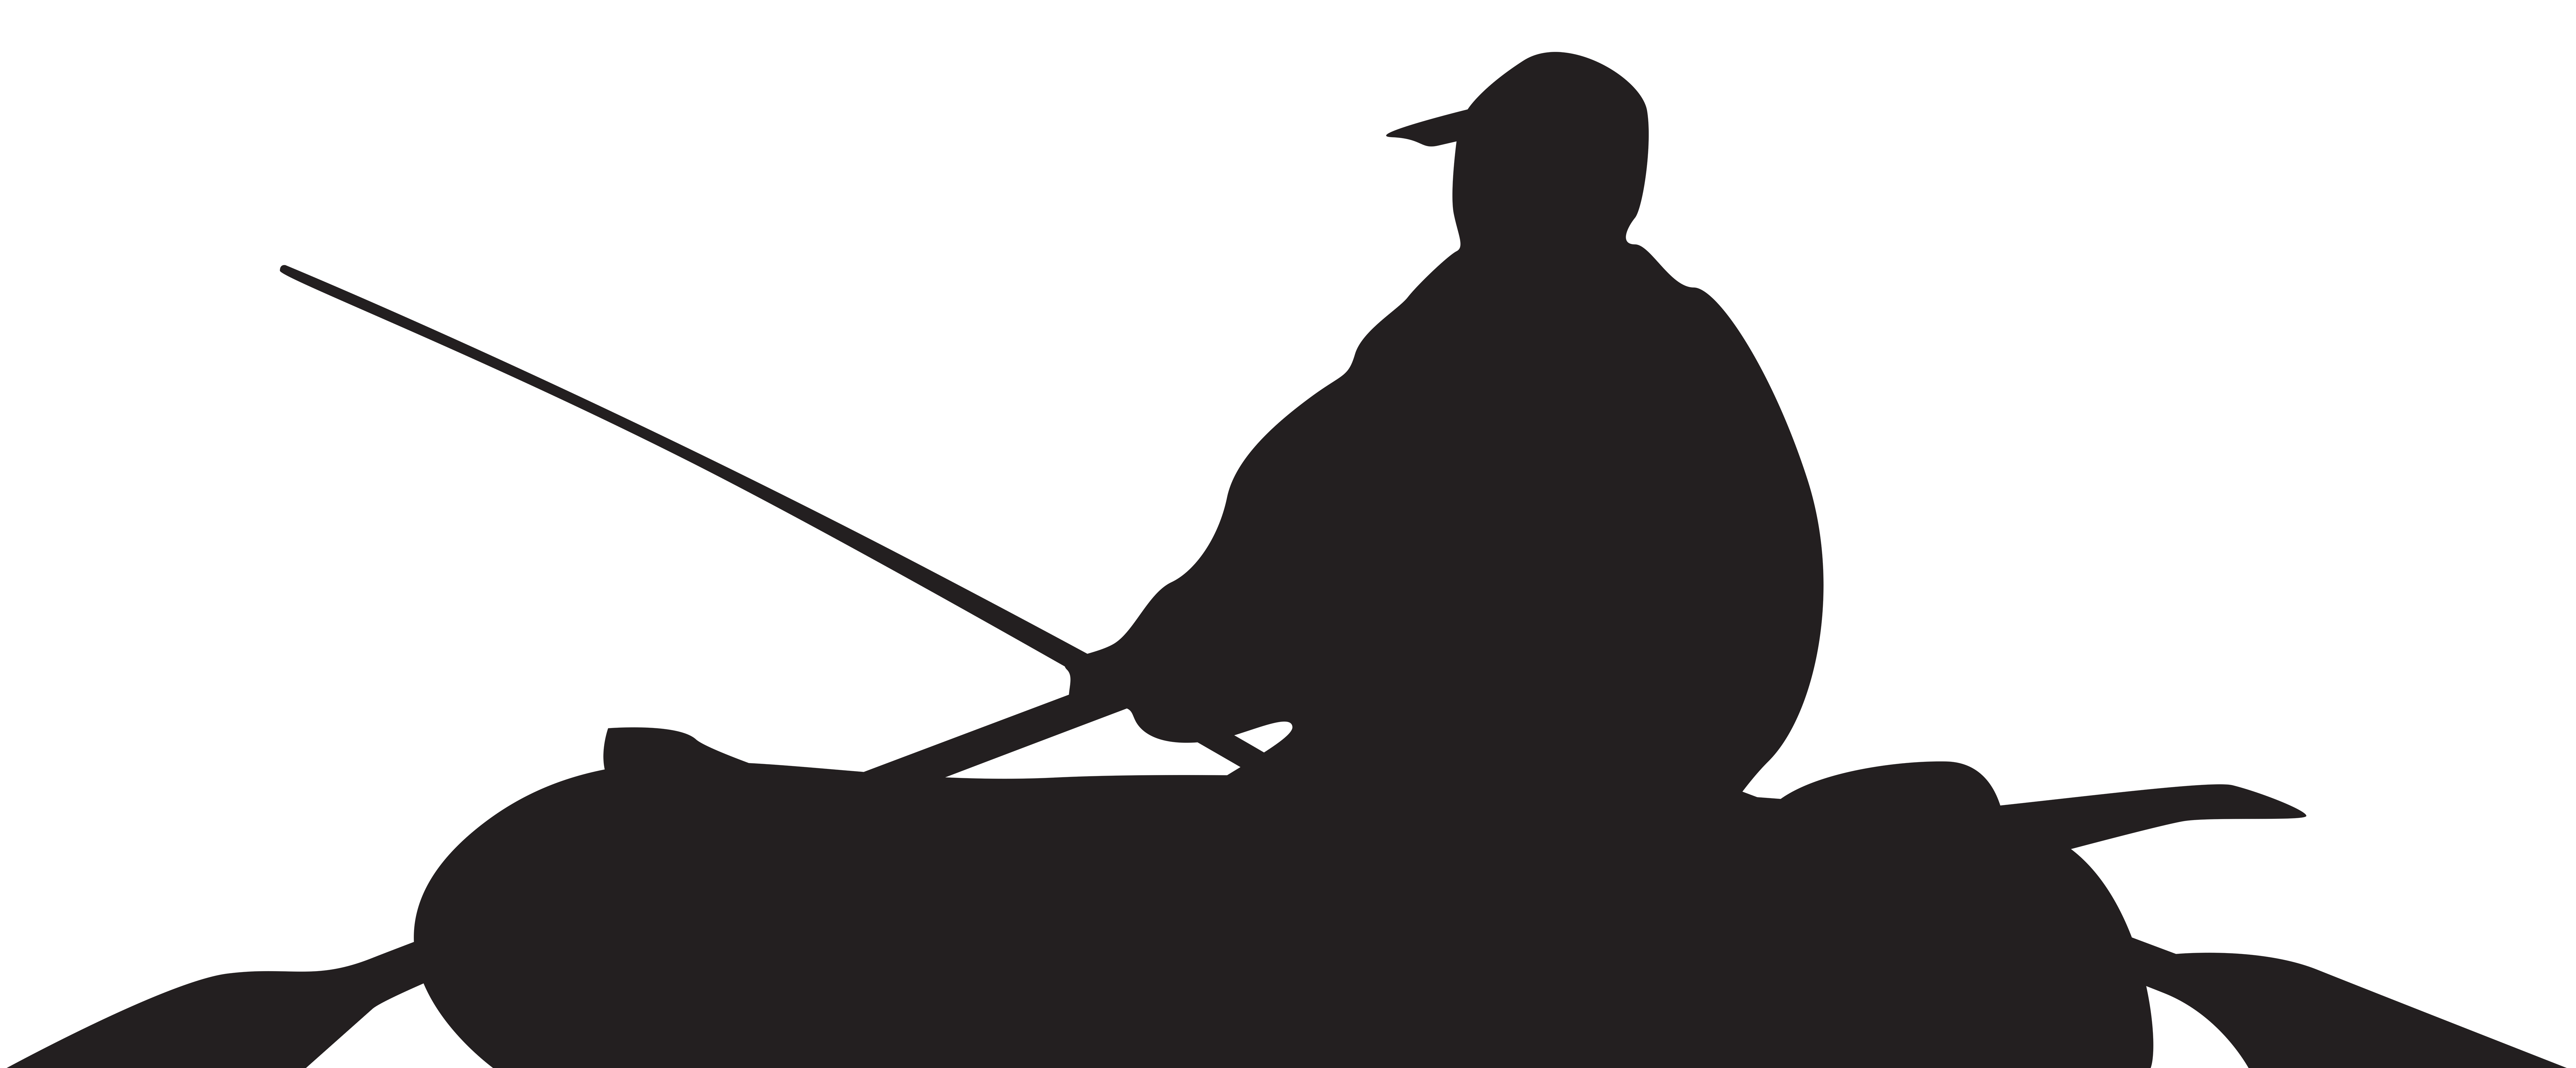 Boat silhouette png. Fisherman and clip art